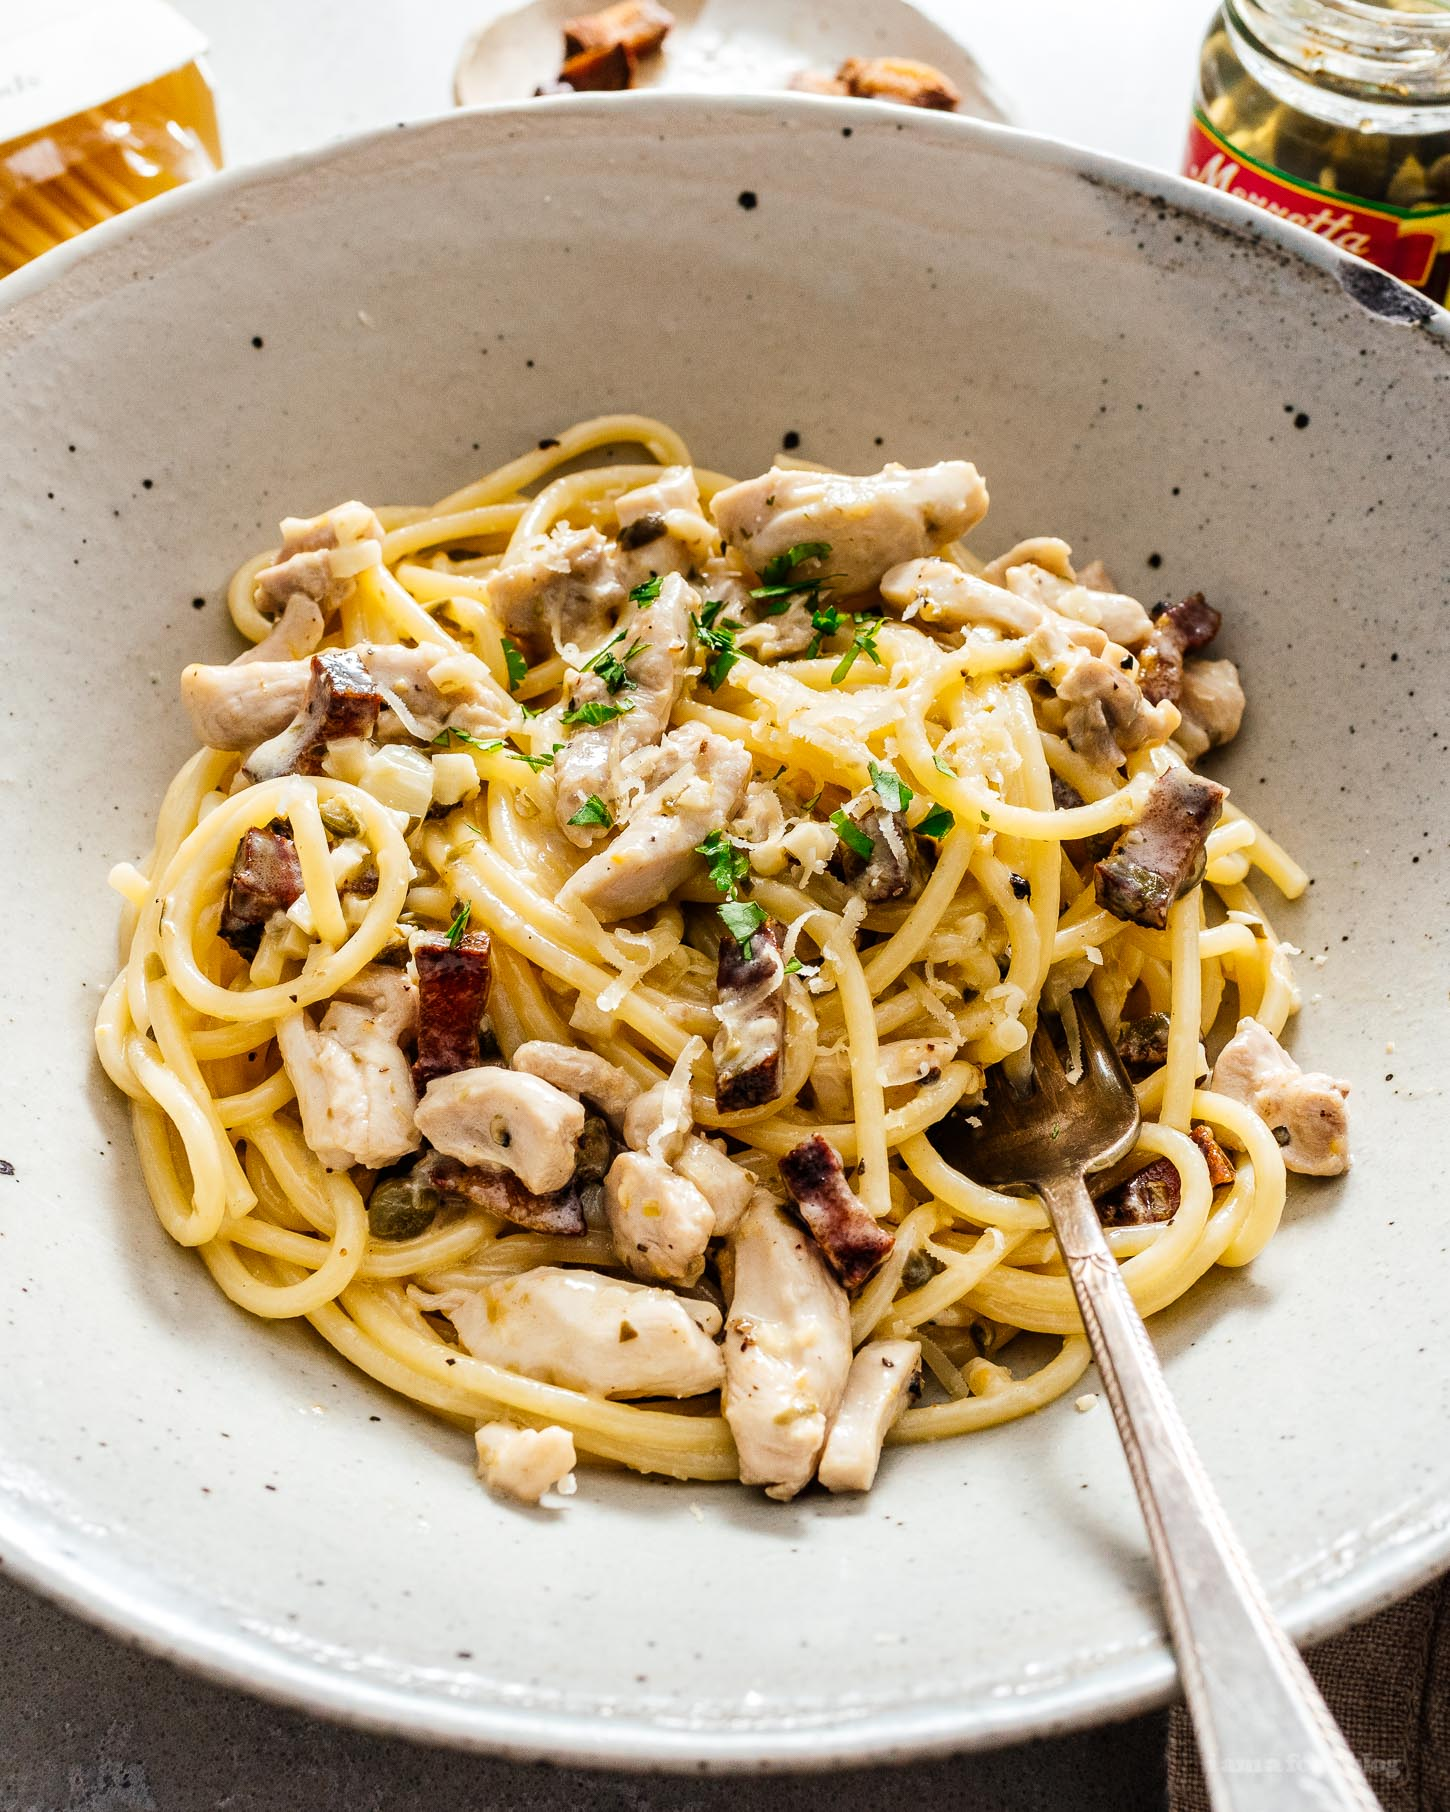 The Creamiest Creamy Chicken and Bacon Pasta Recipe | www.iamafoodblog.com